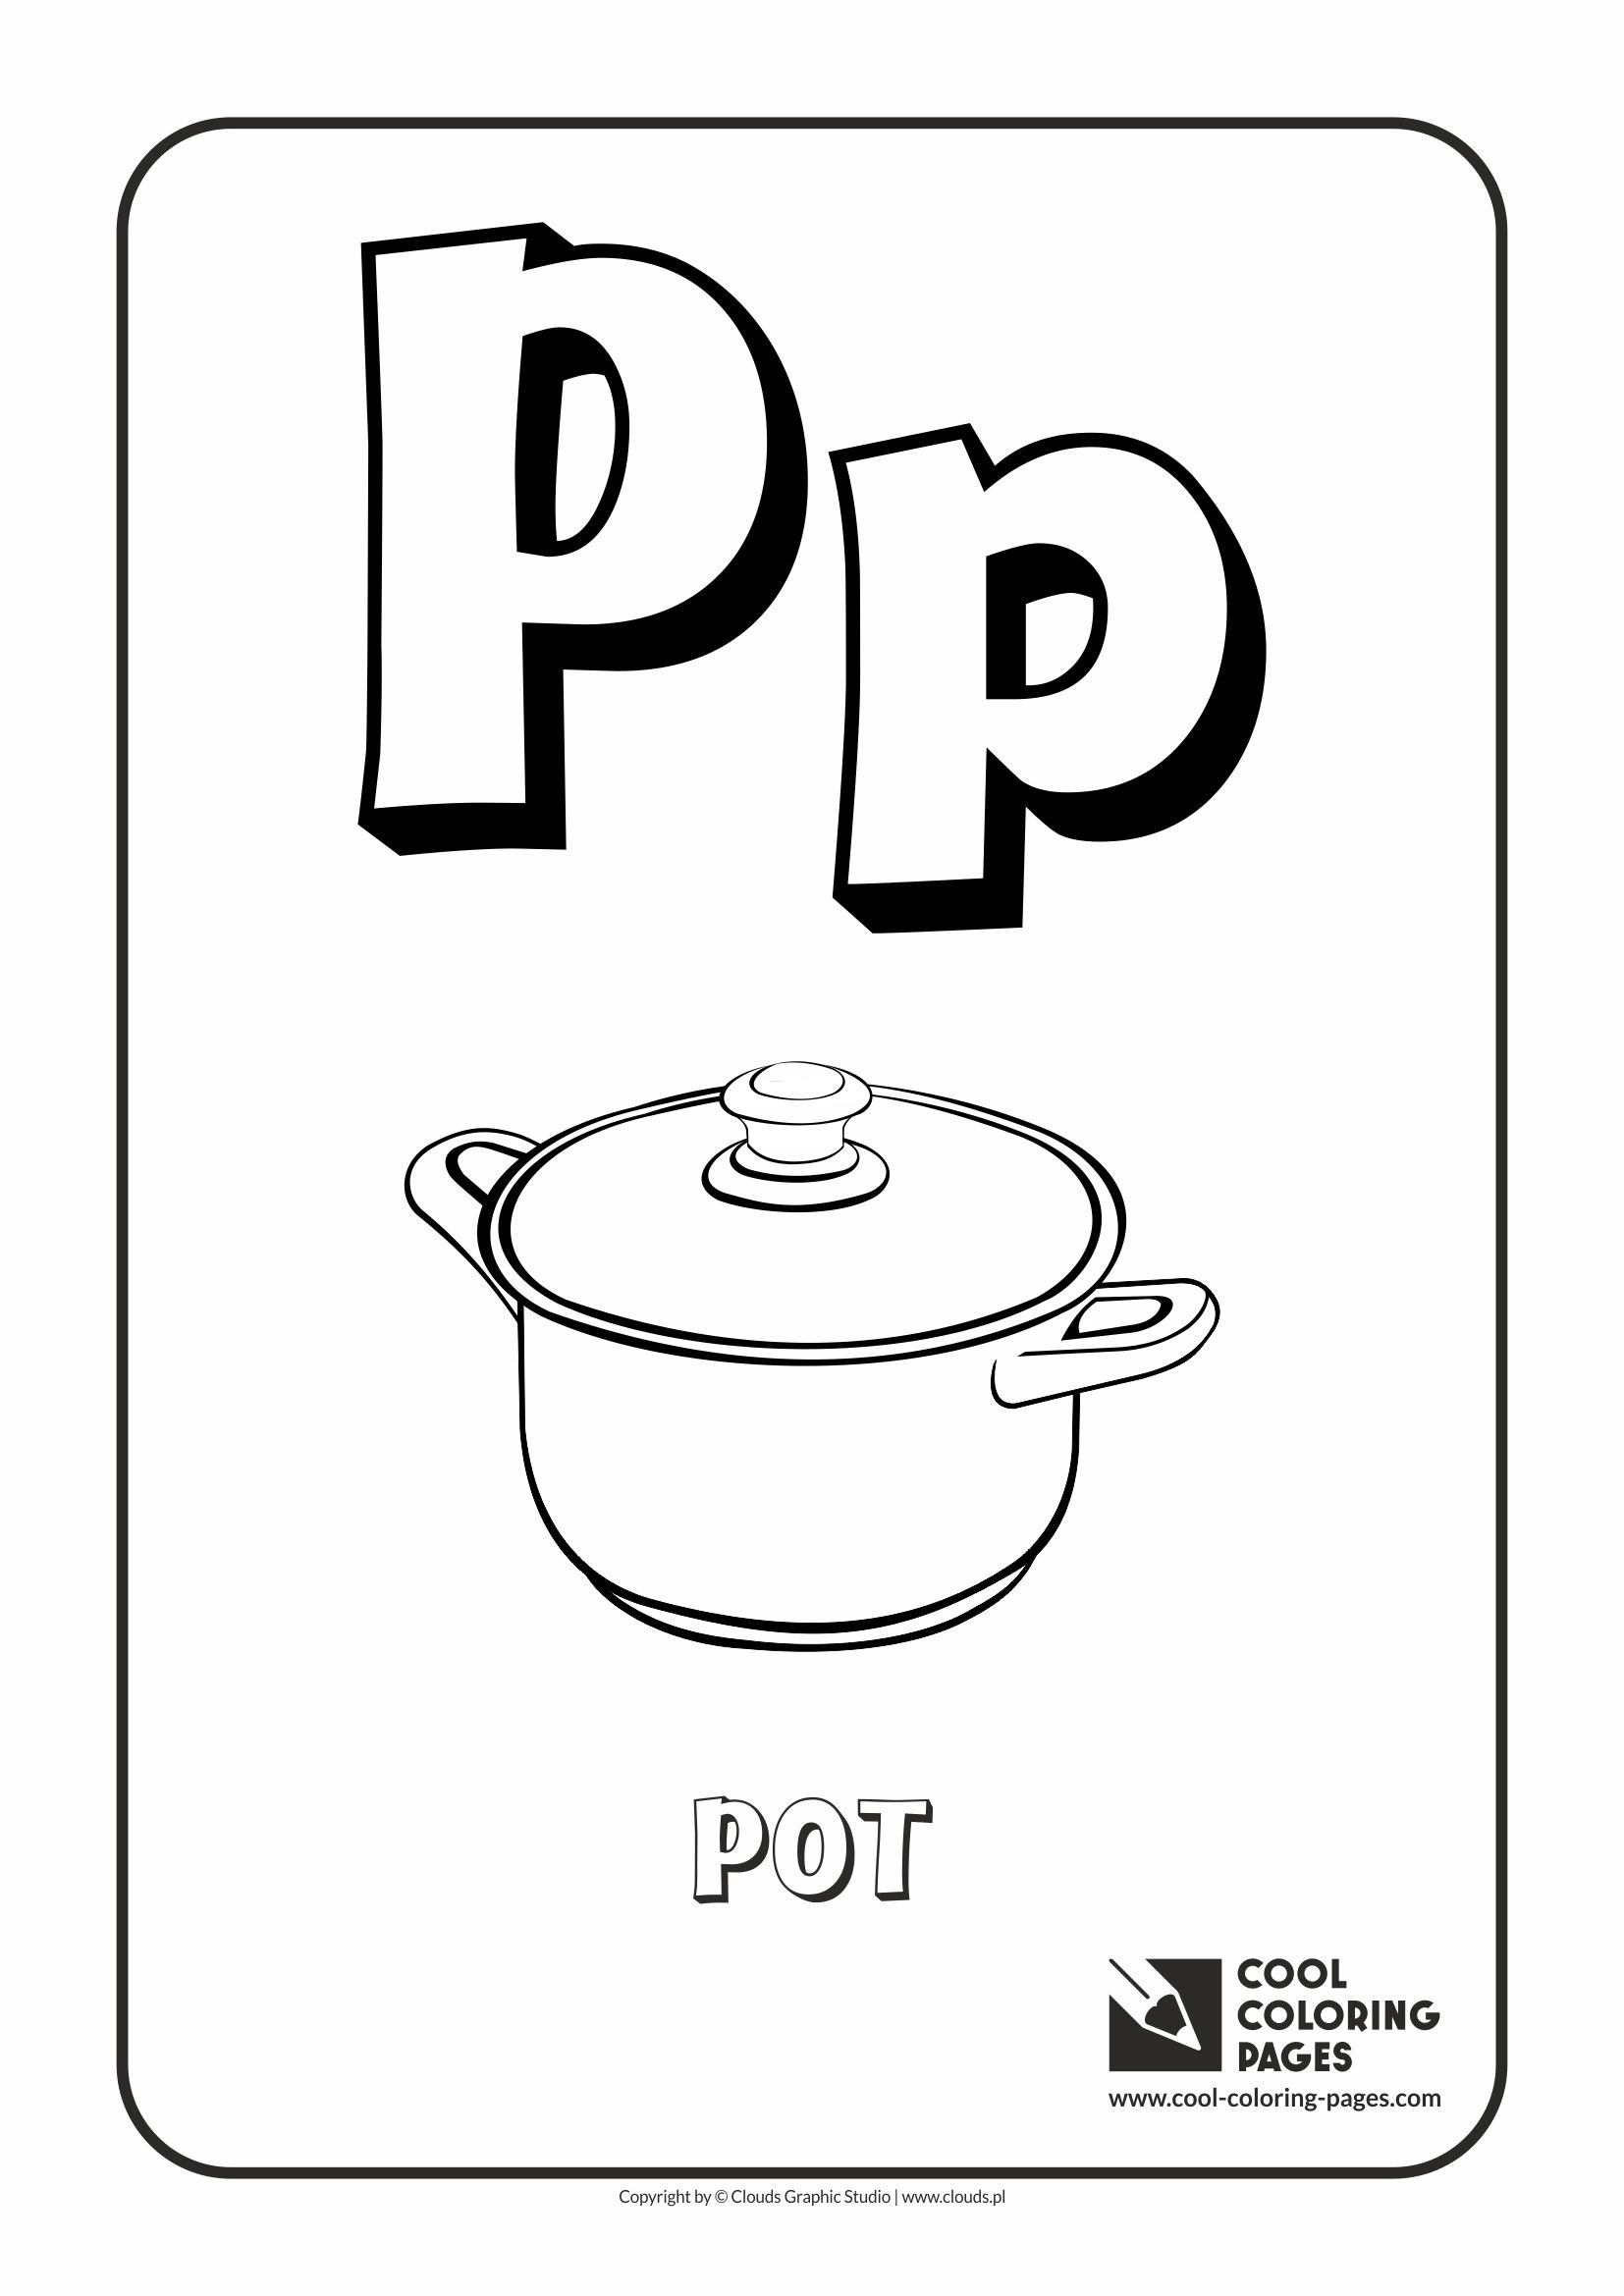 Cool Coloring Pages - Alphabet / Letter P / Coloring page with letter P